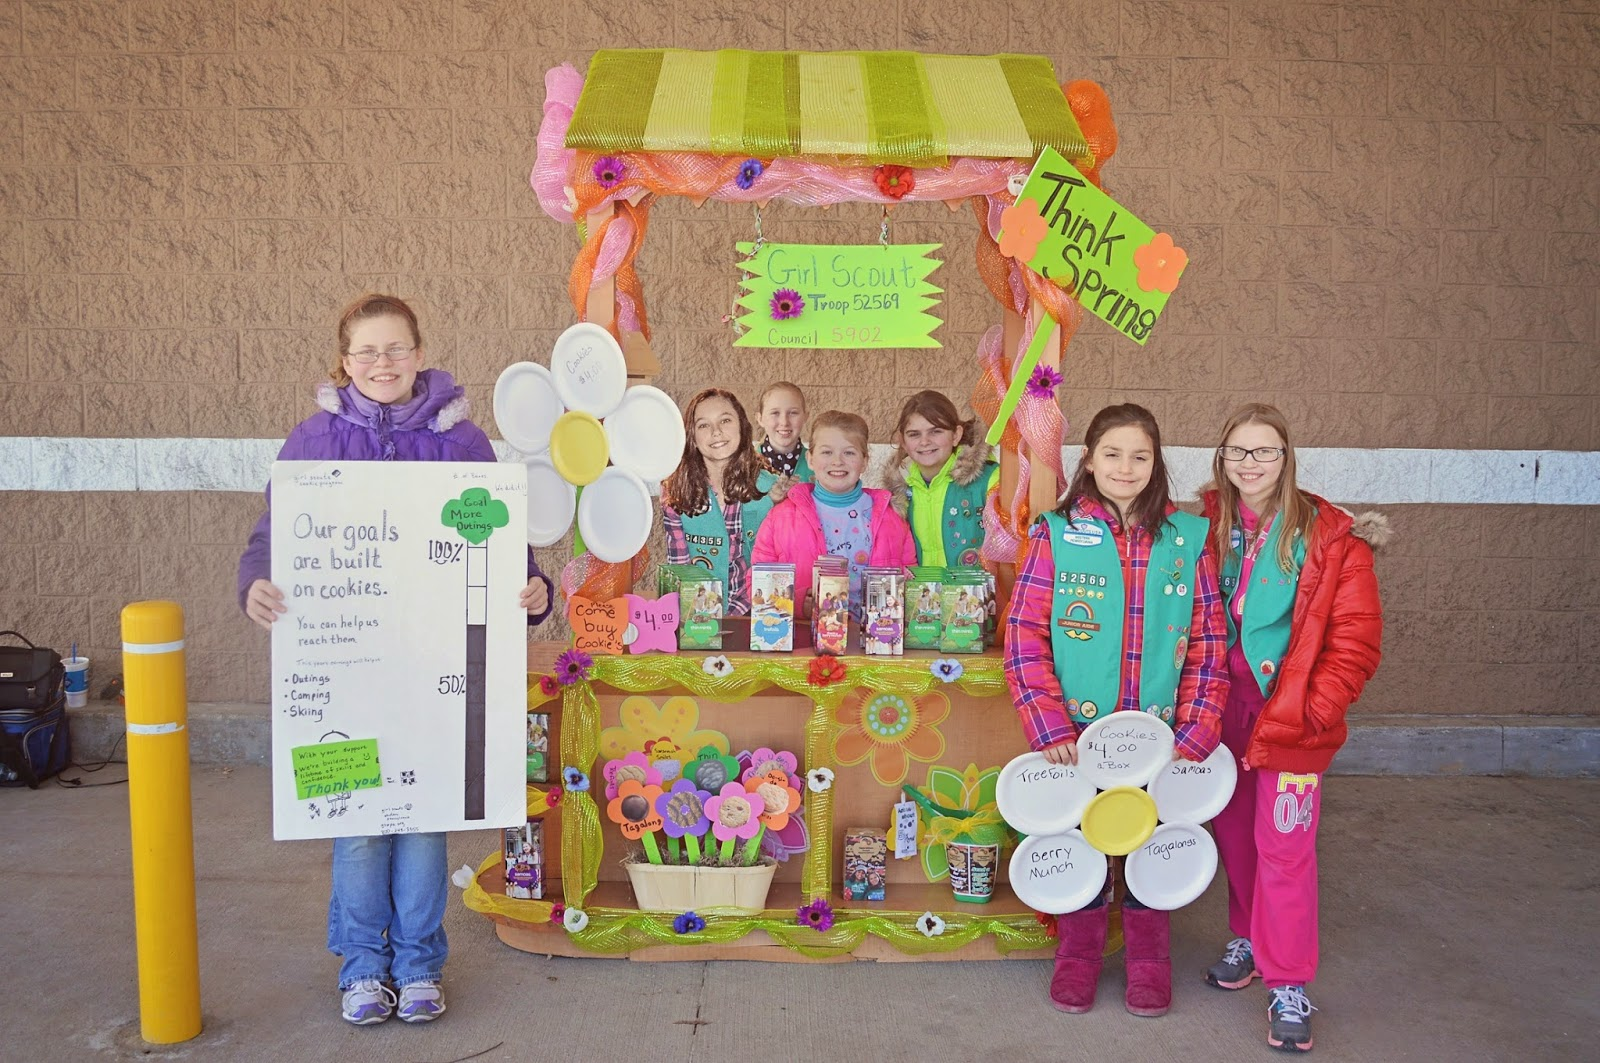 Girl scouts western pennsylvania april 2014 monday april 7 2014 publicscrutiny Image collections